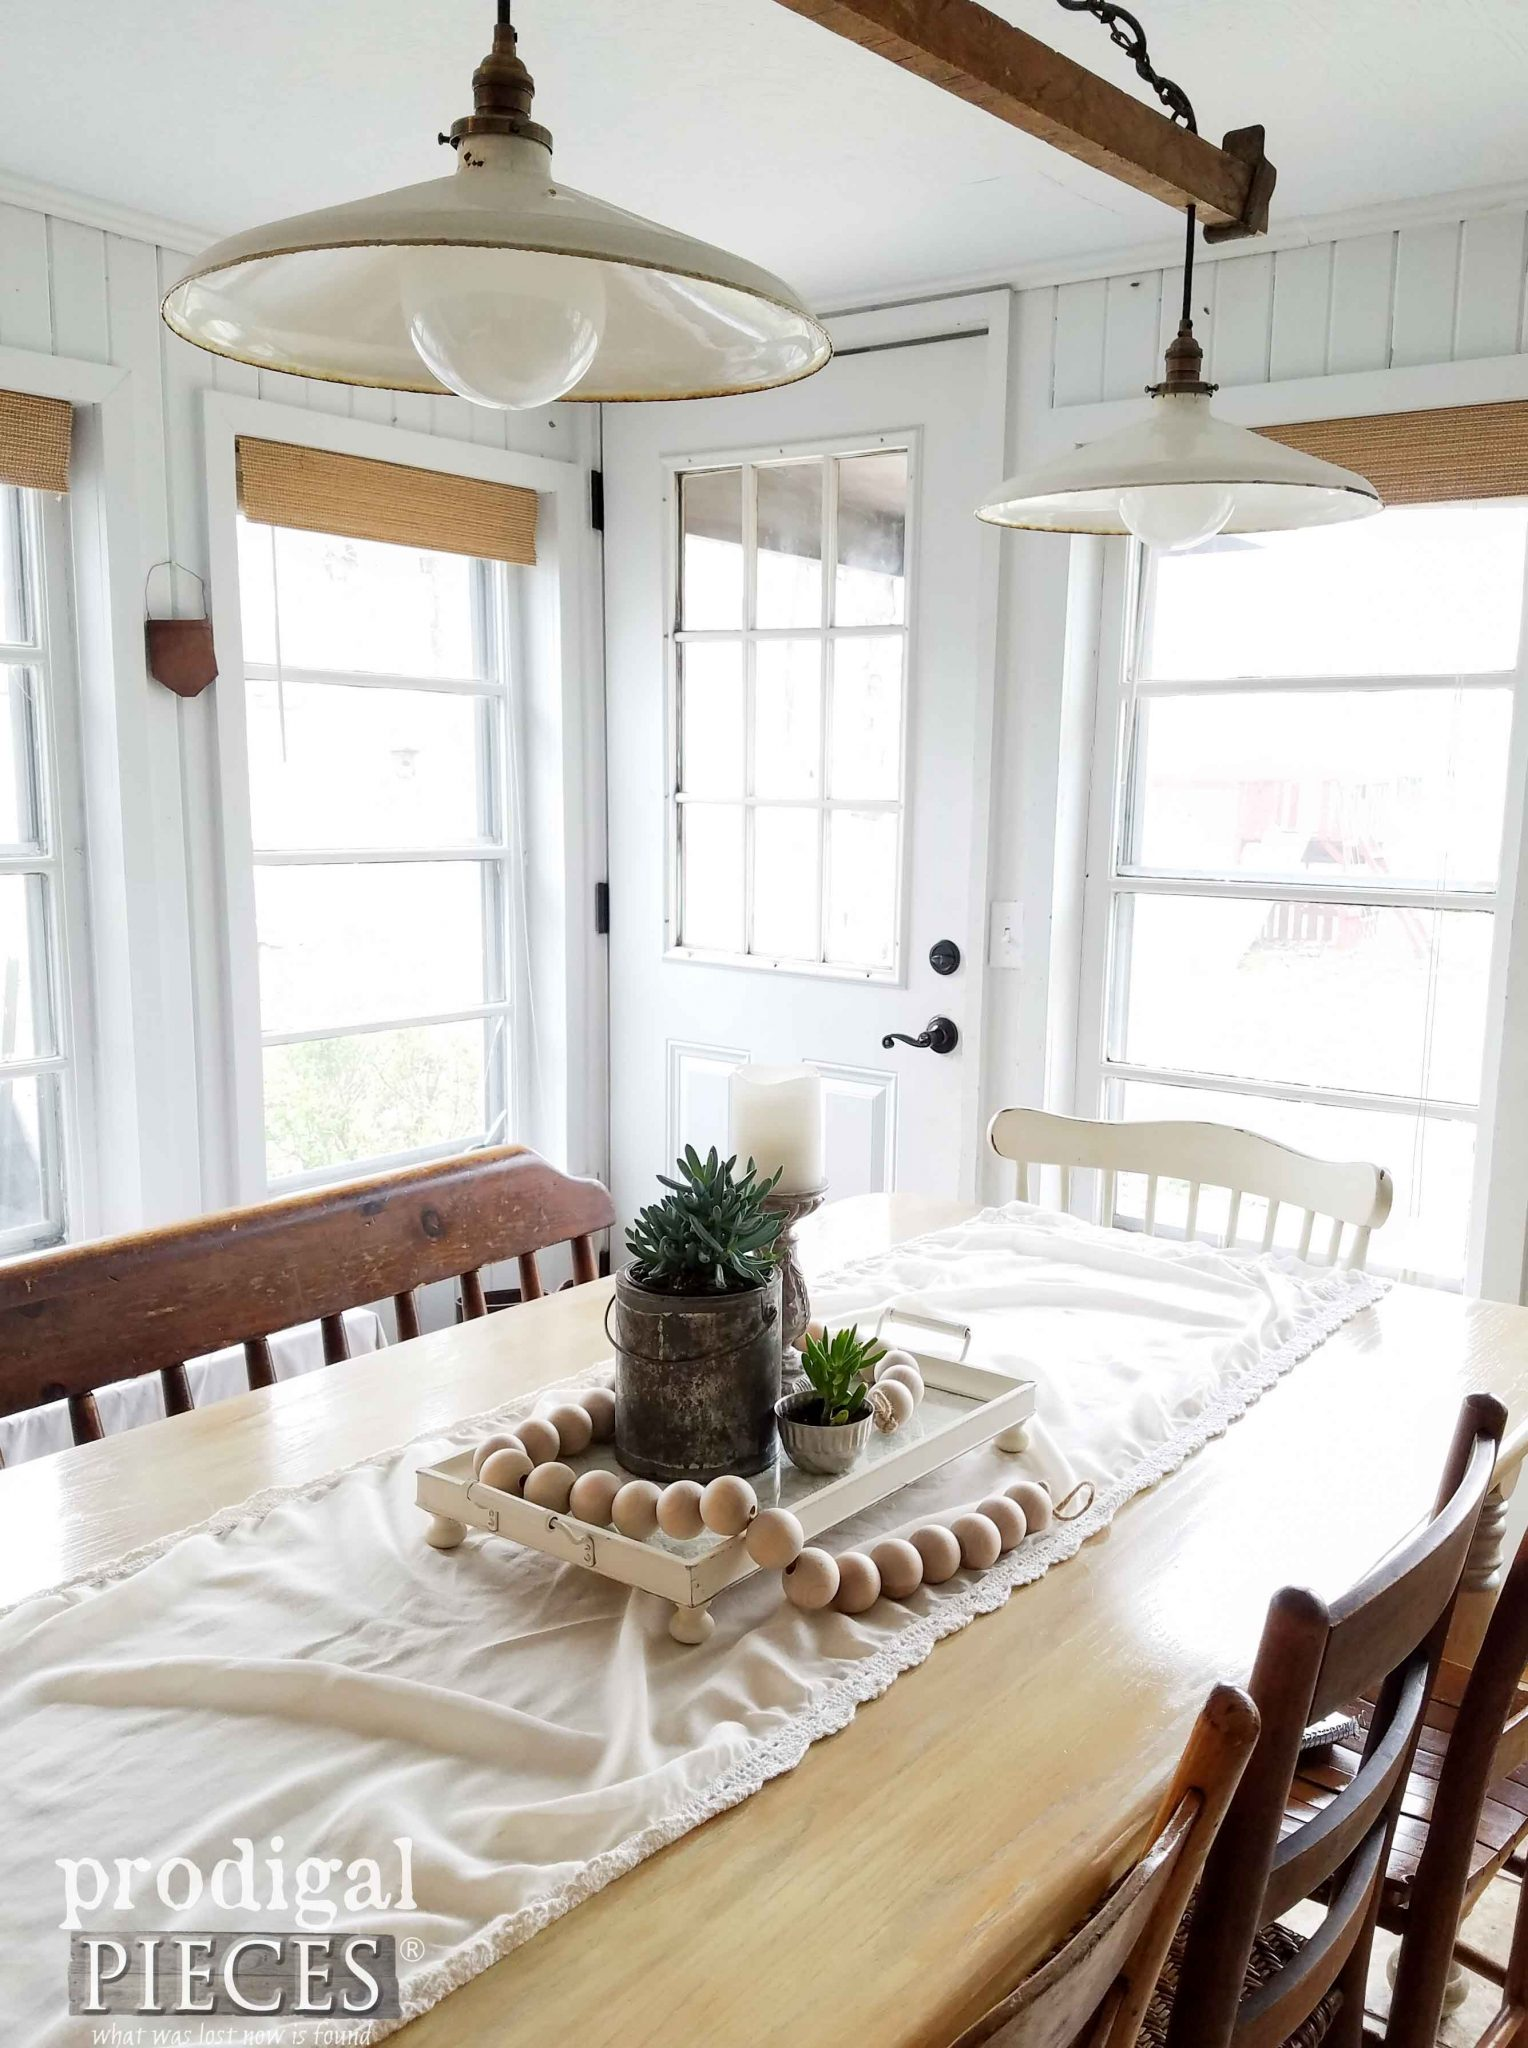 Dining Table Tray for Centerpiece ~ Farmhouse Dining | Prodigal Pieces | prodigalpieces.com